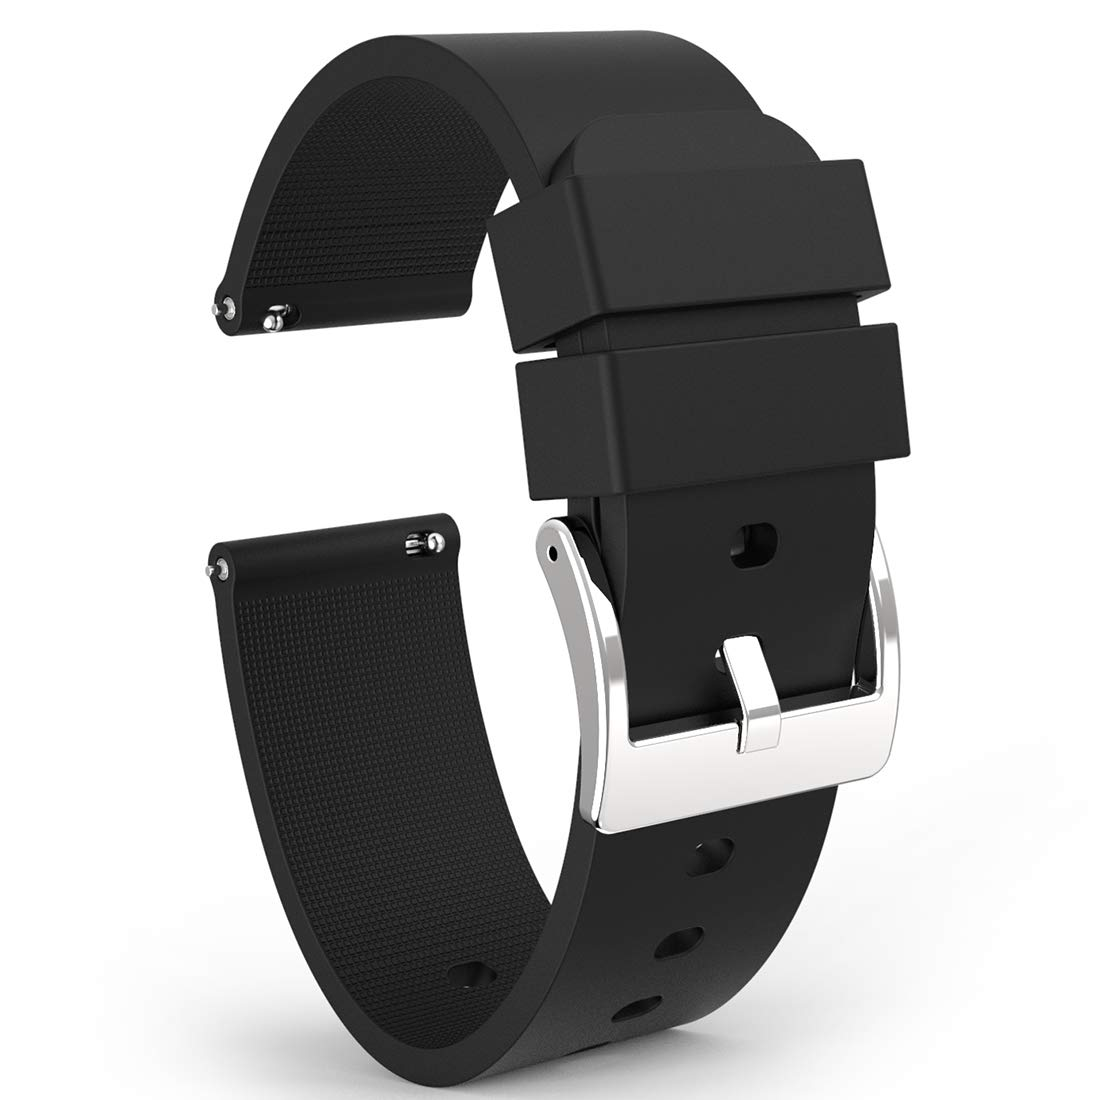 Wellfit Watch Strap Soft Silicone Quick Release Watch Band Stainless Steel Buckle Choose Color & Width 18mm 20mm 22mm Silky Smooth Rubber Watch Bands